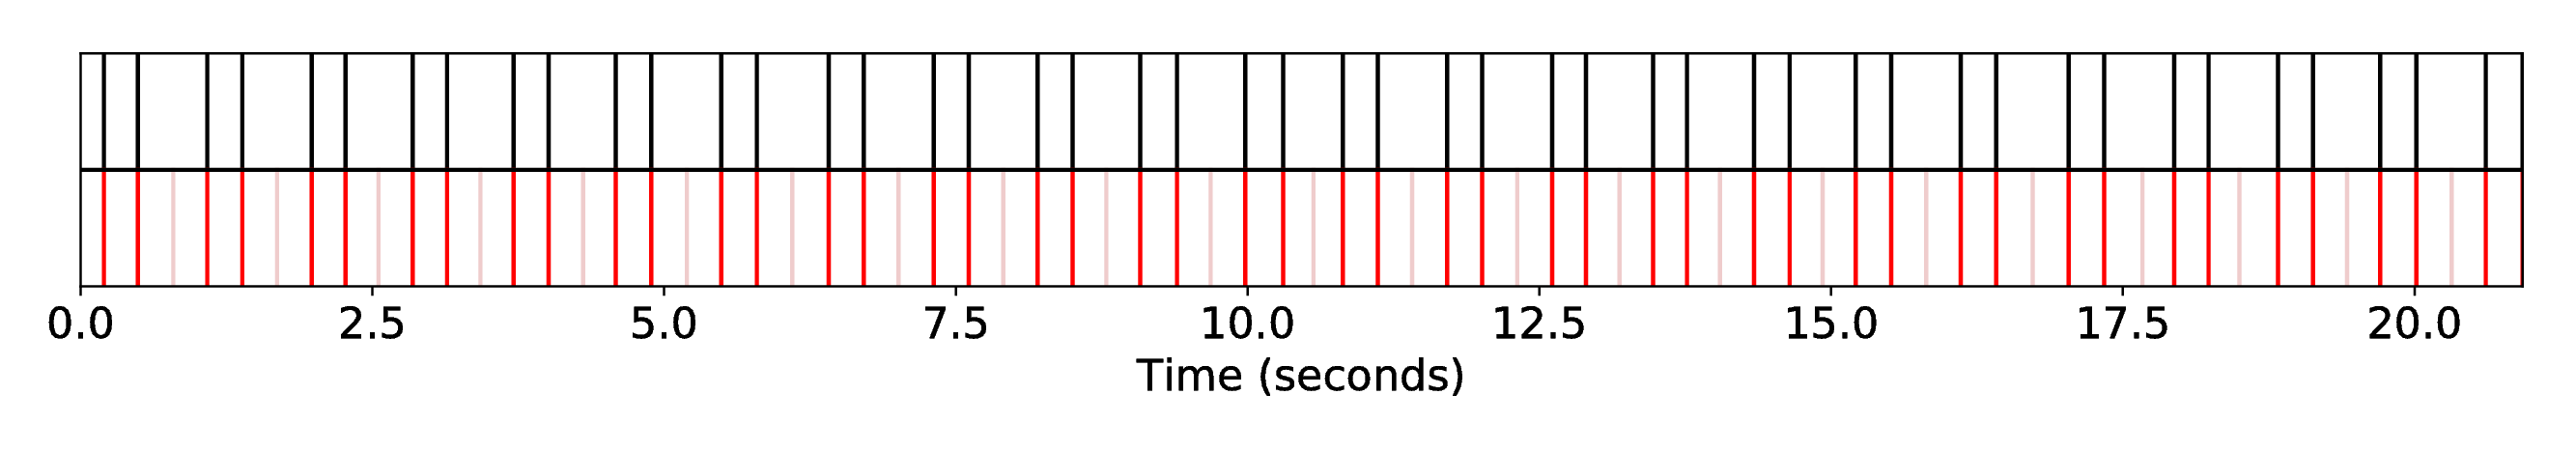 DP1_INT1_R-RW-Heart__S-Silence__SequenceAlignment